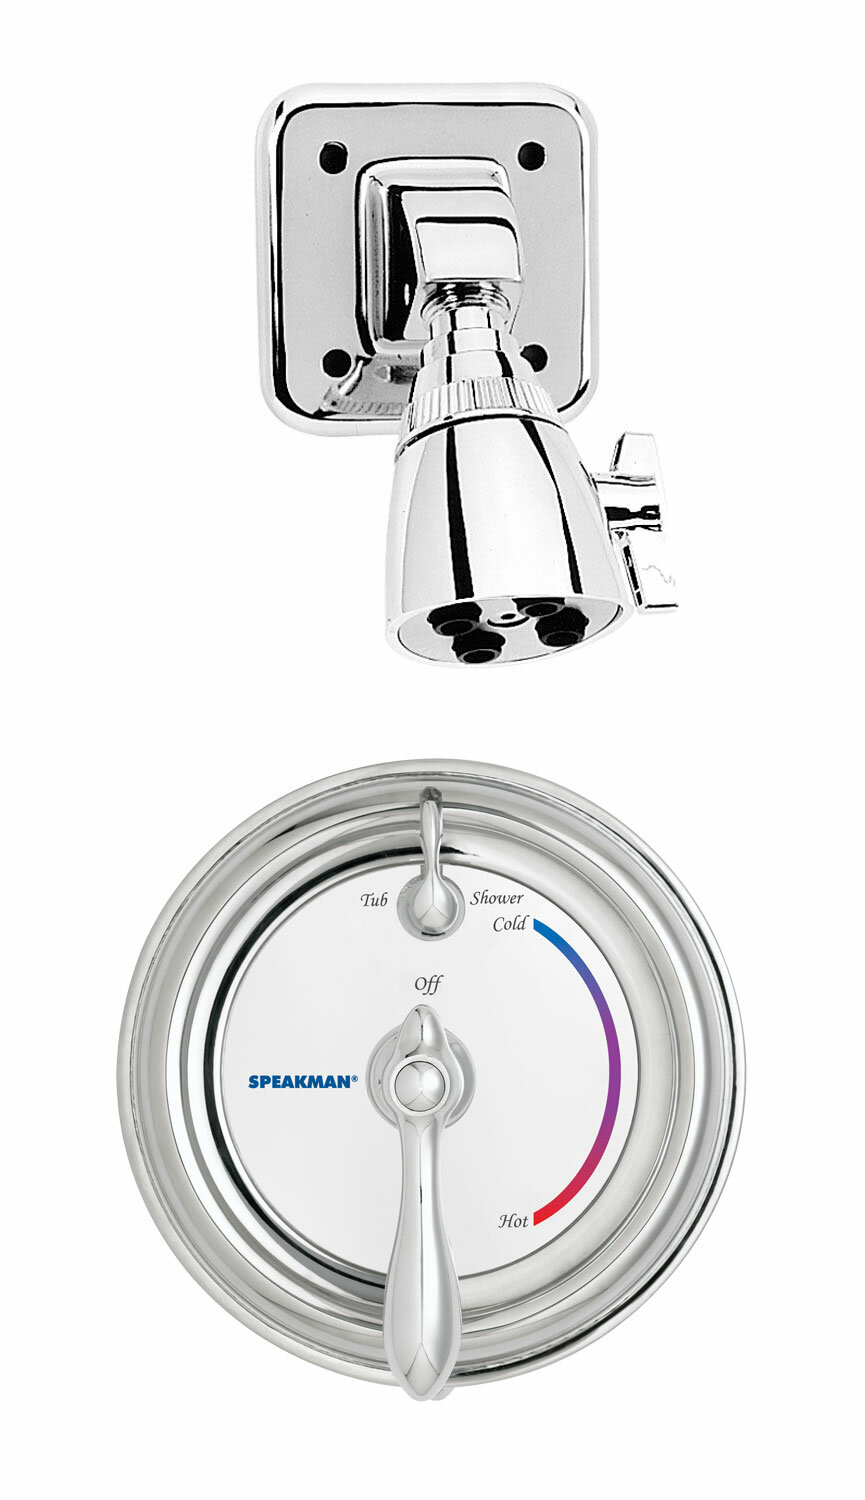 Speakman Sentinel Mark Ii Dual Function Shower Faucet Wayfair